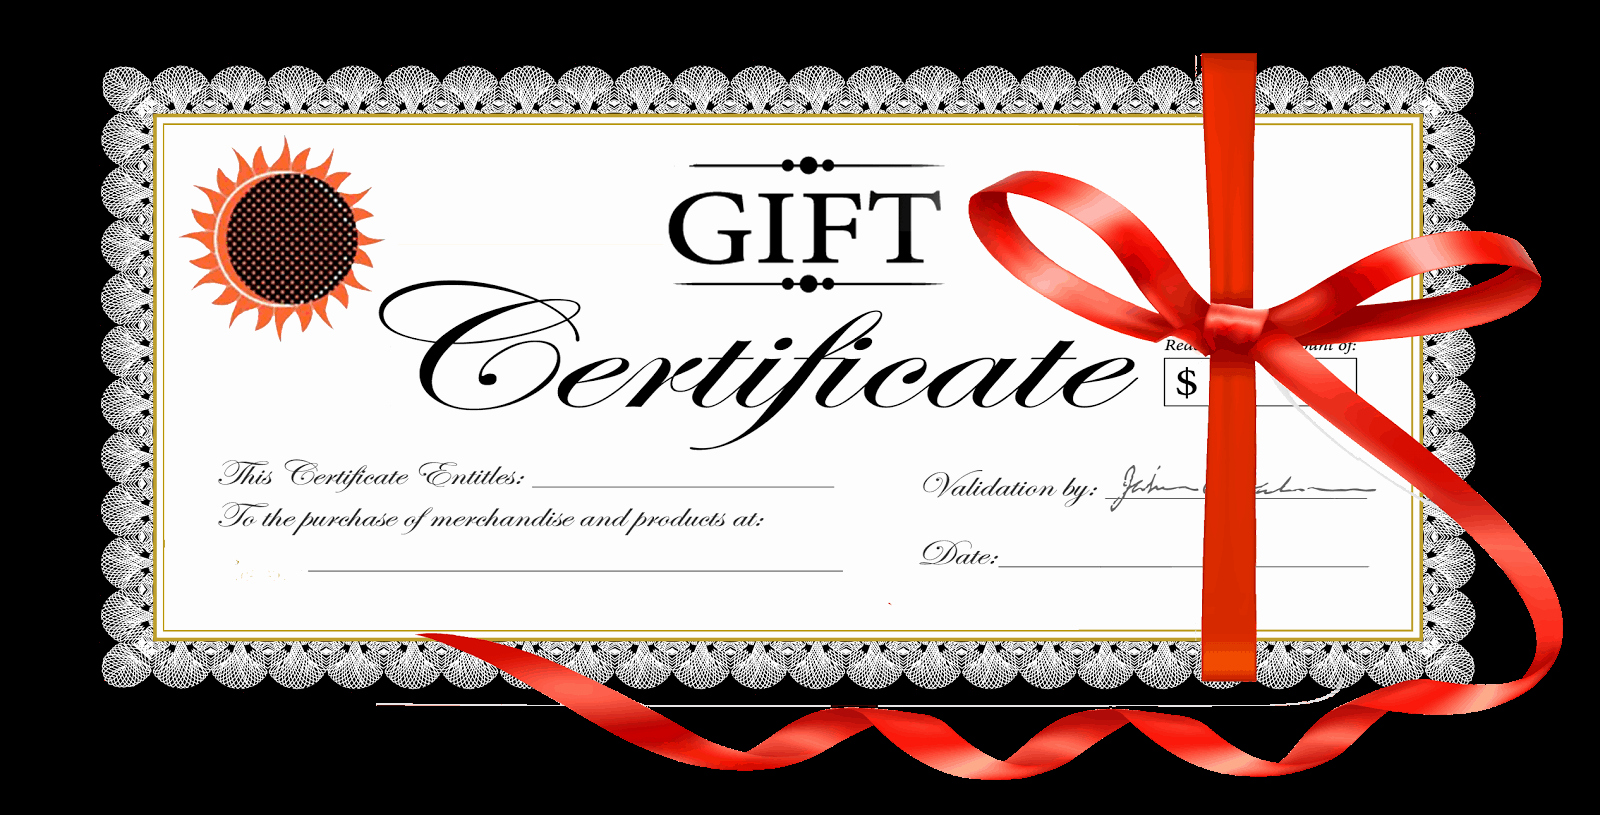 Gift Certificate Template Printable New 18 Gift Certificate Templates Excel Pdf formats